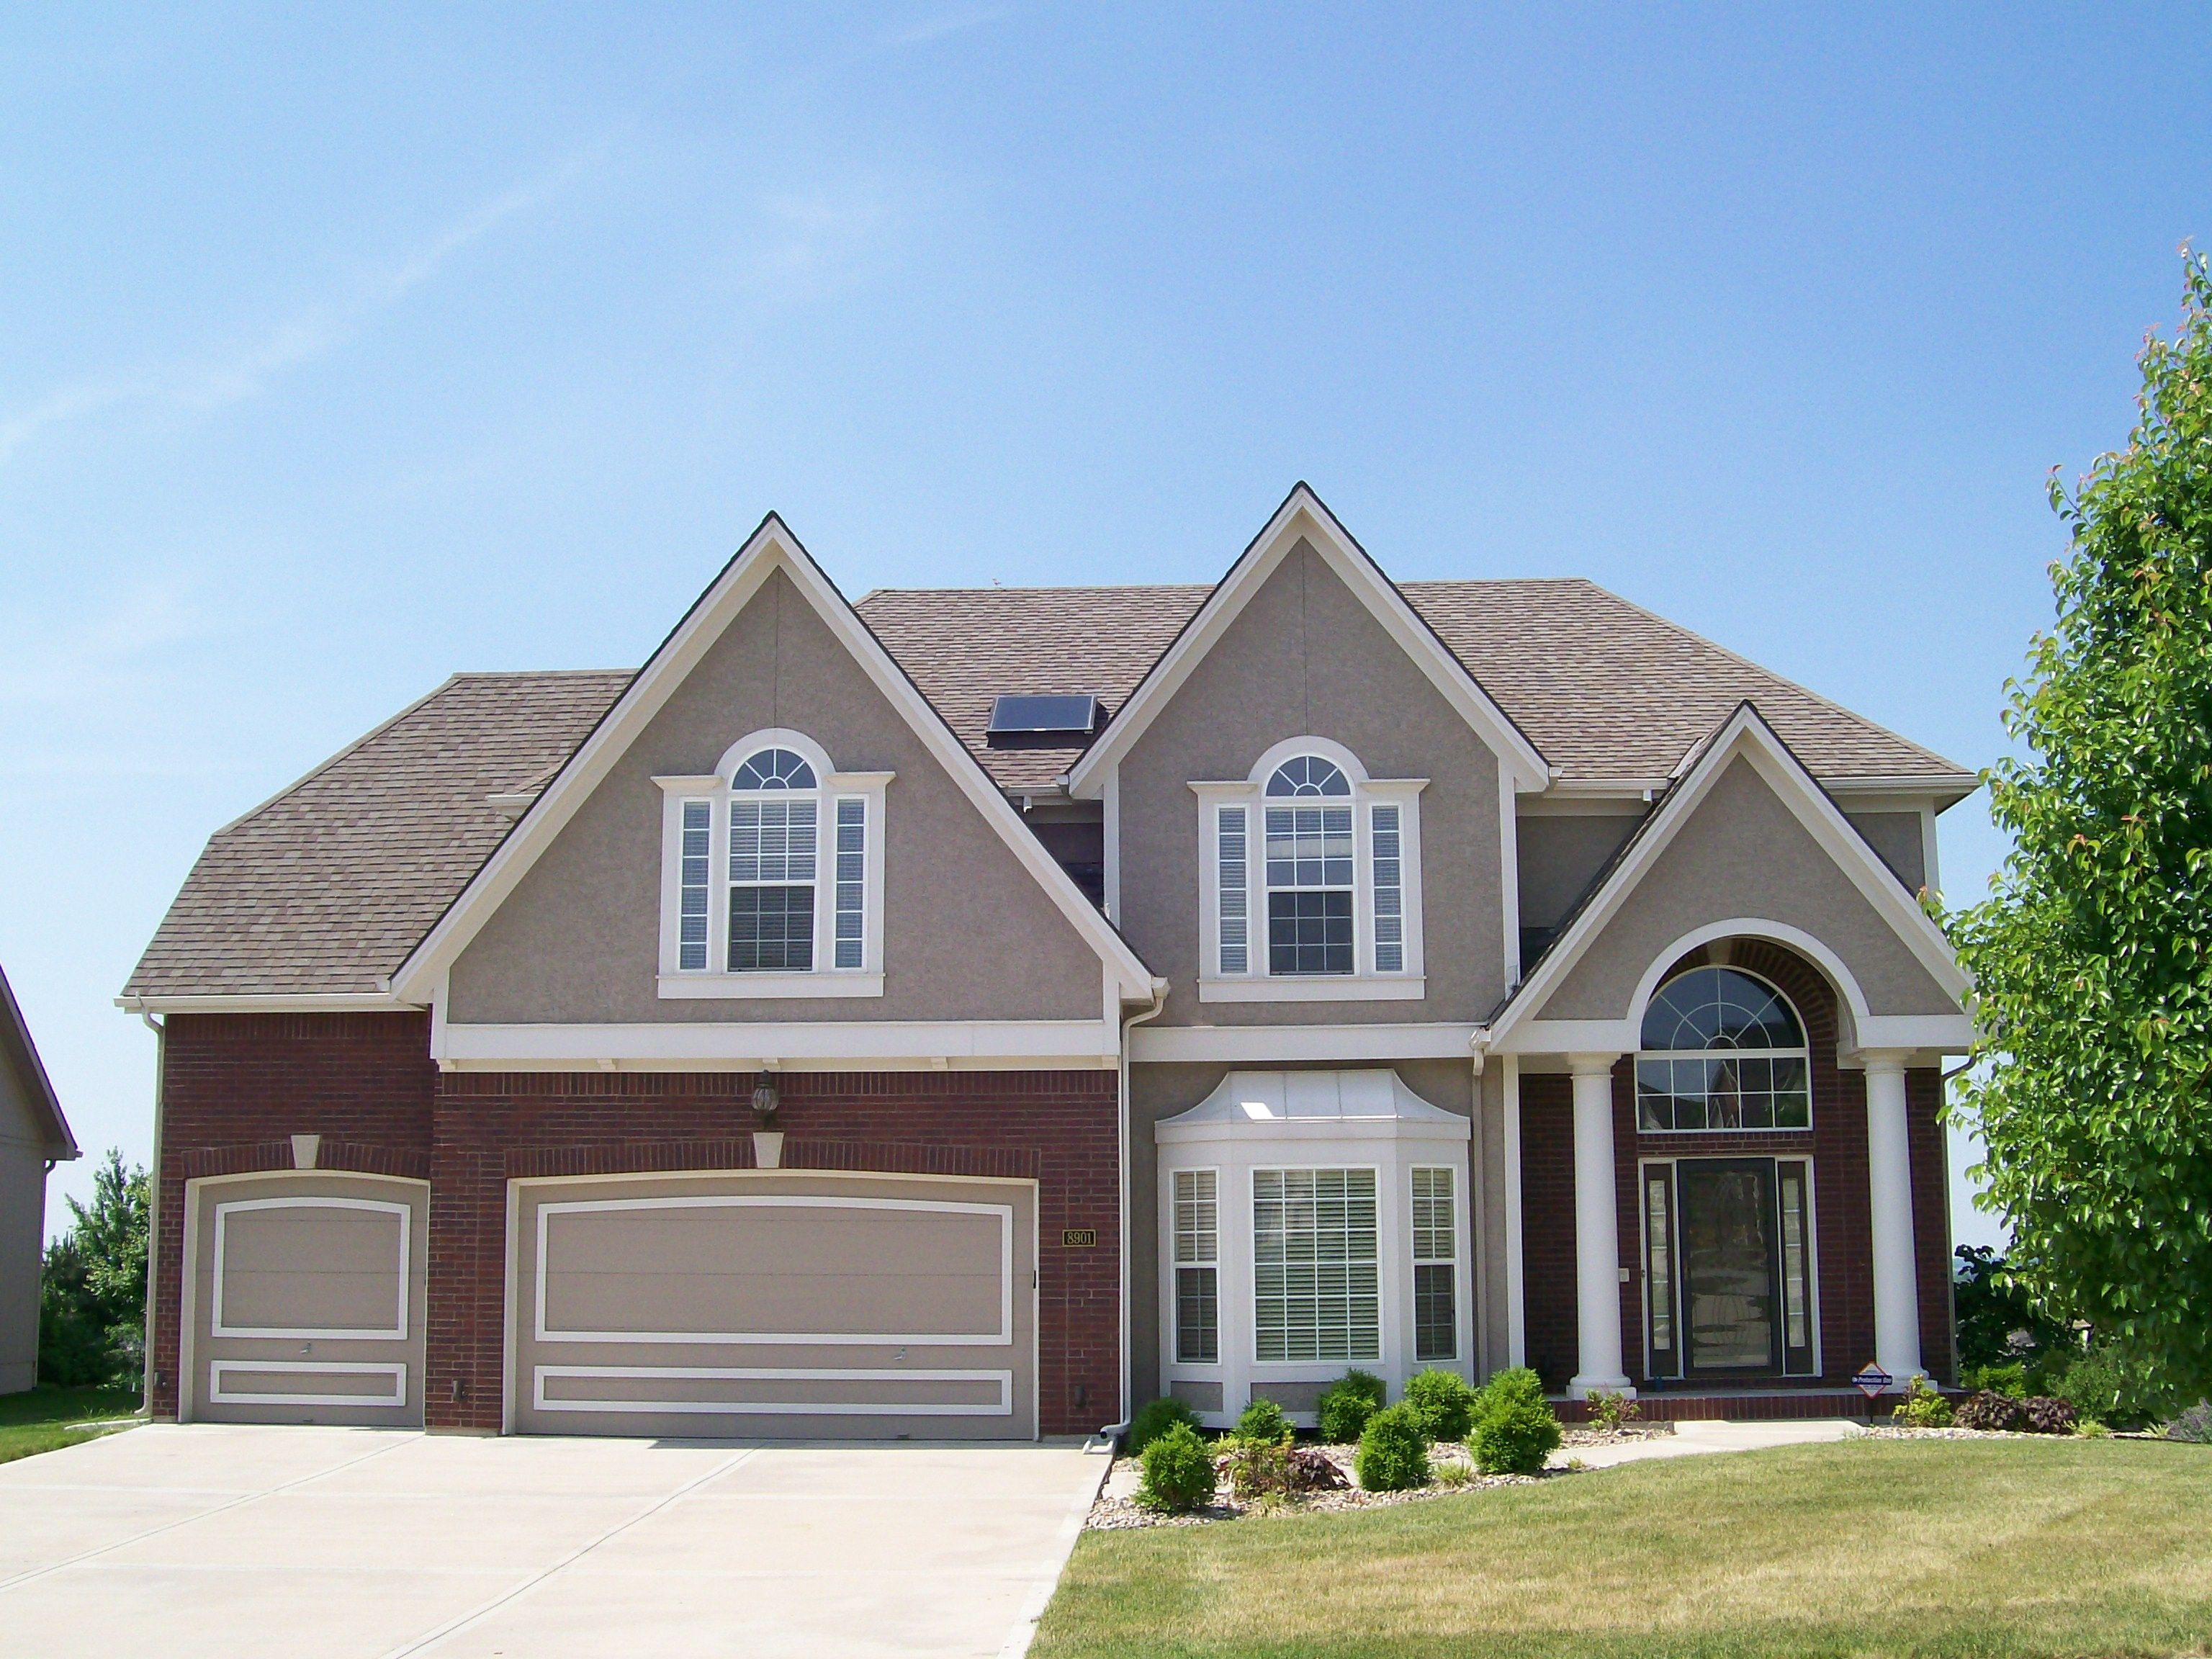 We Are Fortunate To Have Quality Builders And Beautiful Home Styles